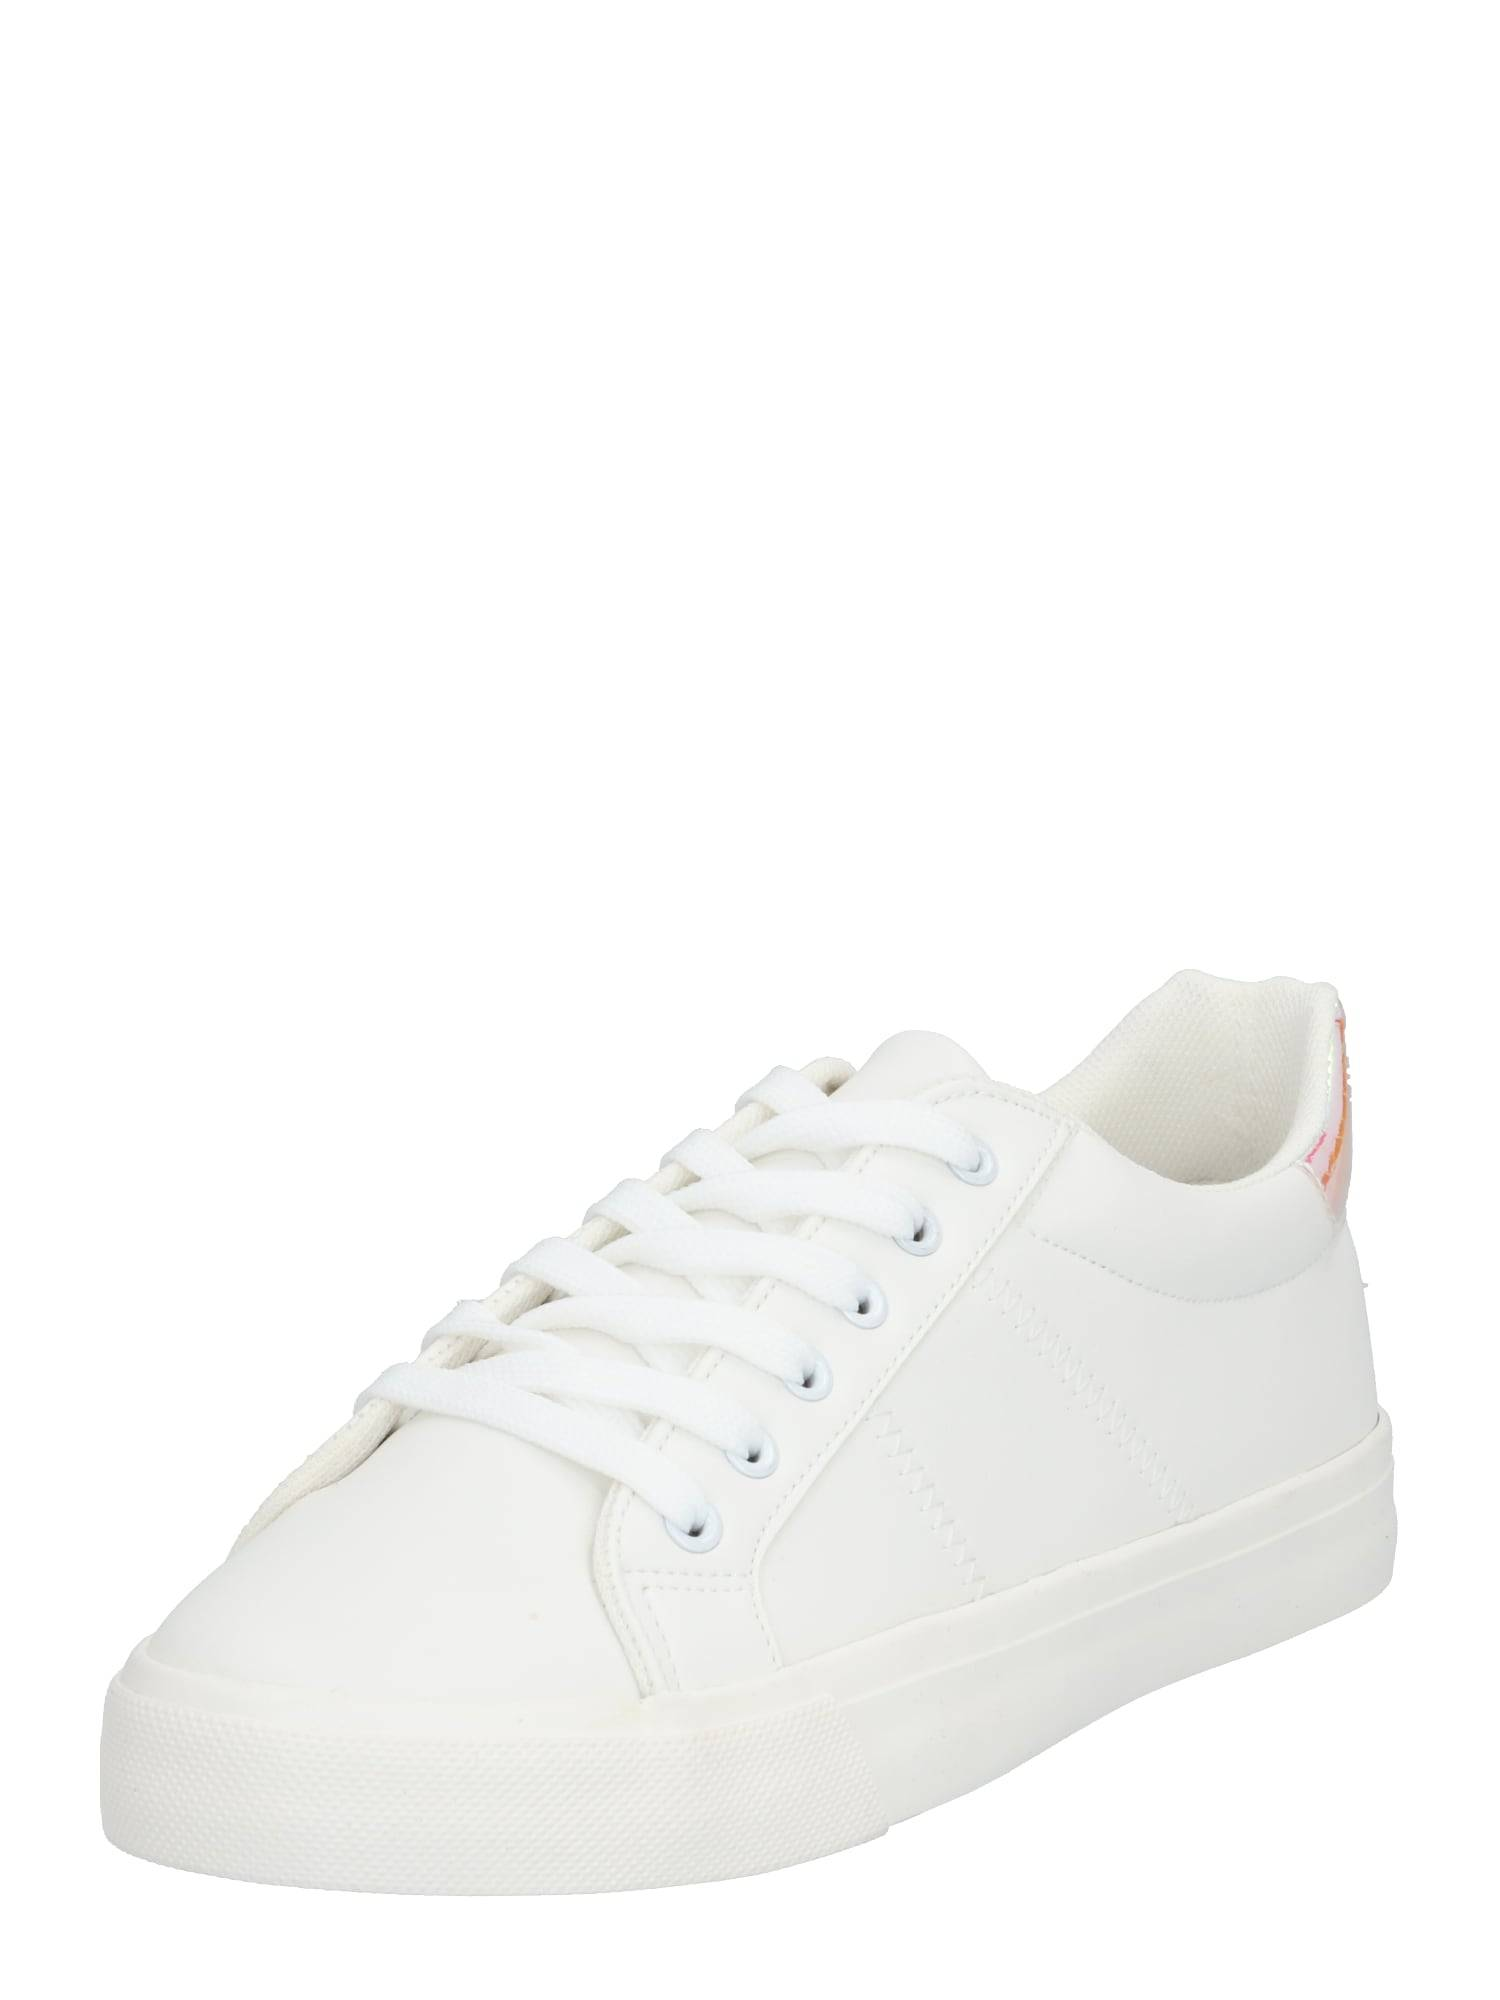 Dorothy Perkins Baskets basses 'INK TRAINER'  - Blanc - Taille: 5 - female